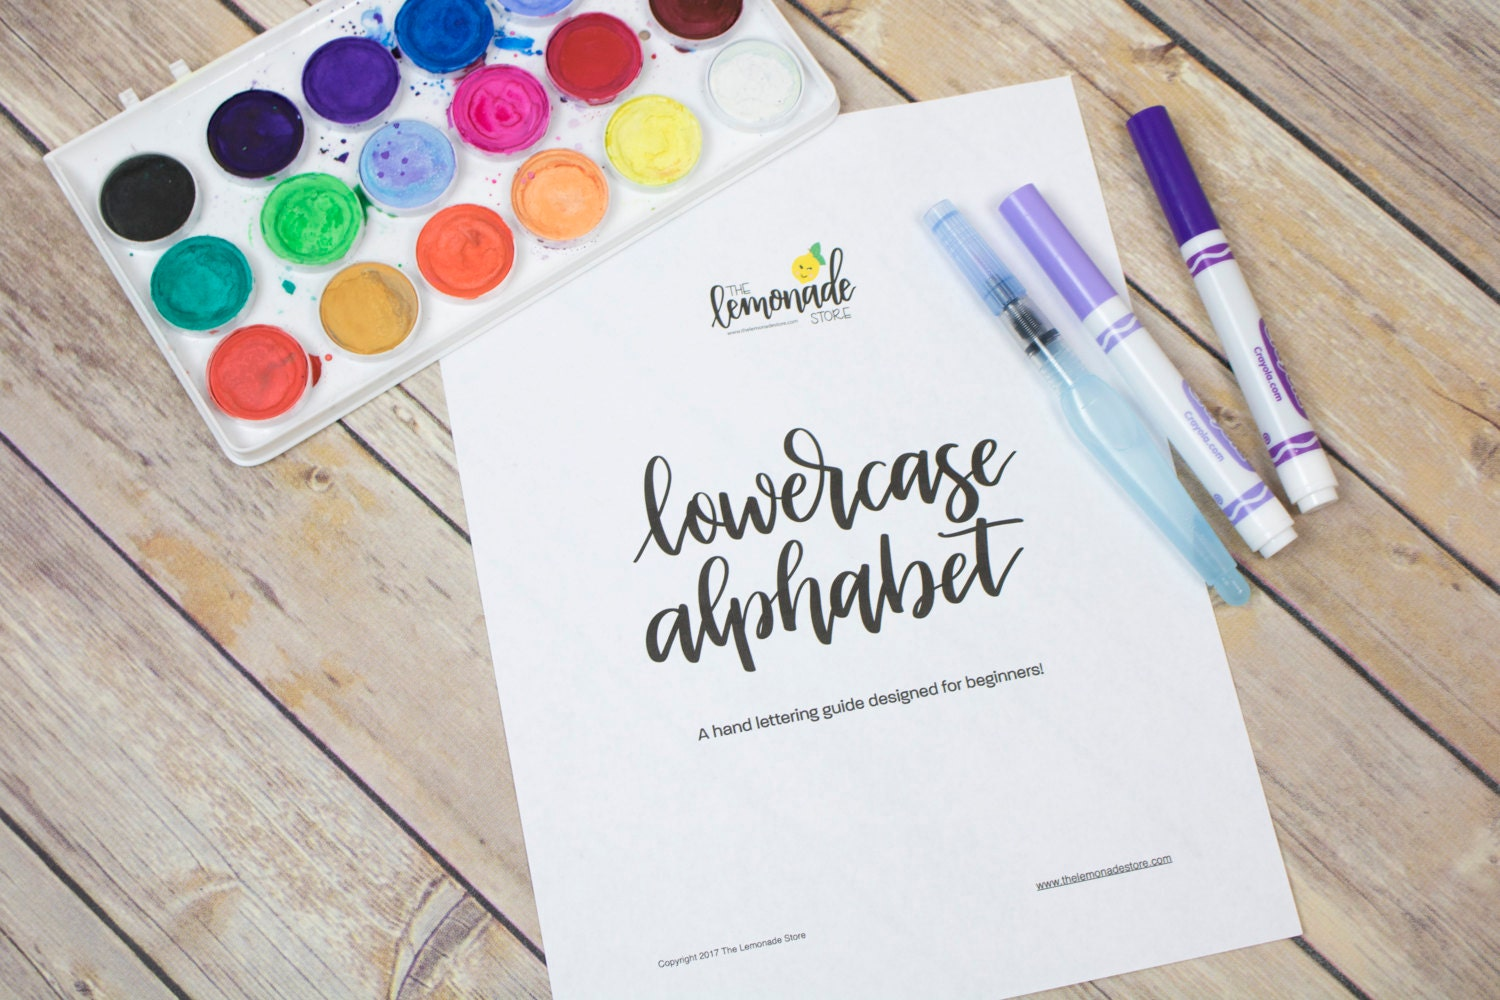 Lowercase alphabet practice guides for beginners hand lettering